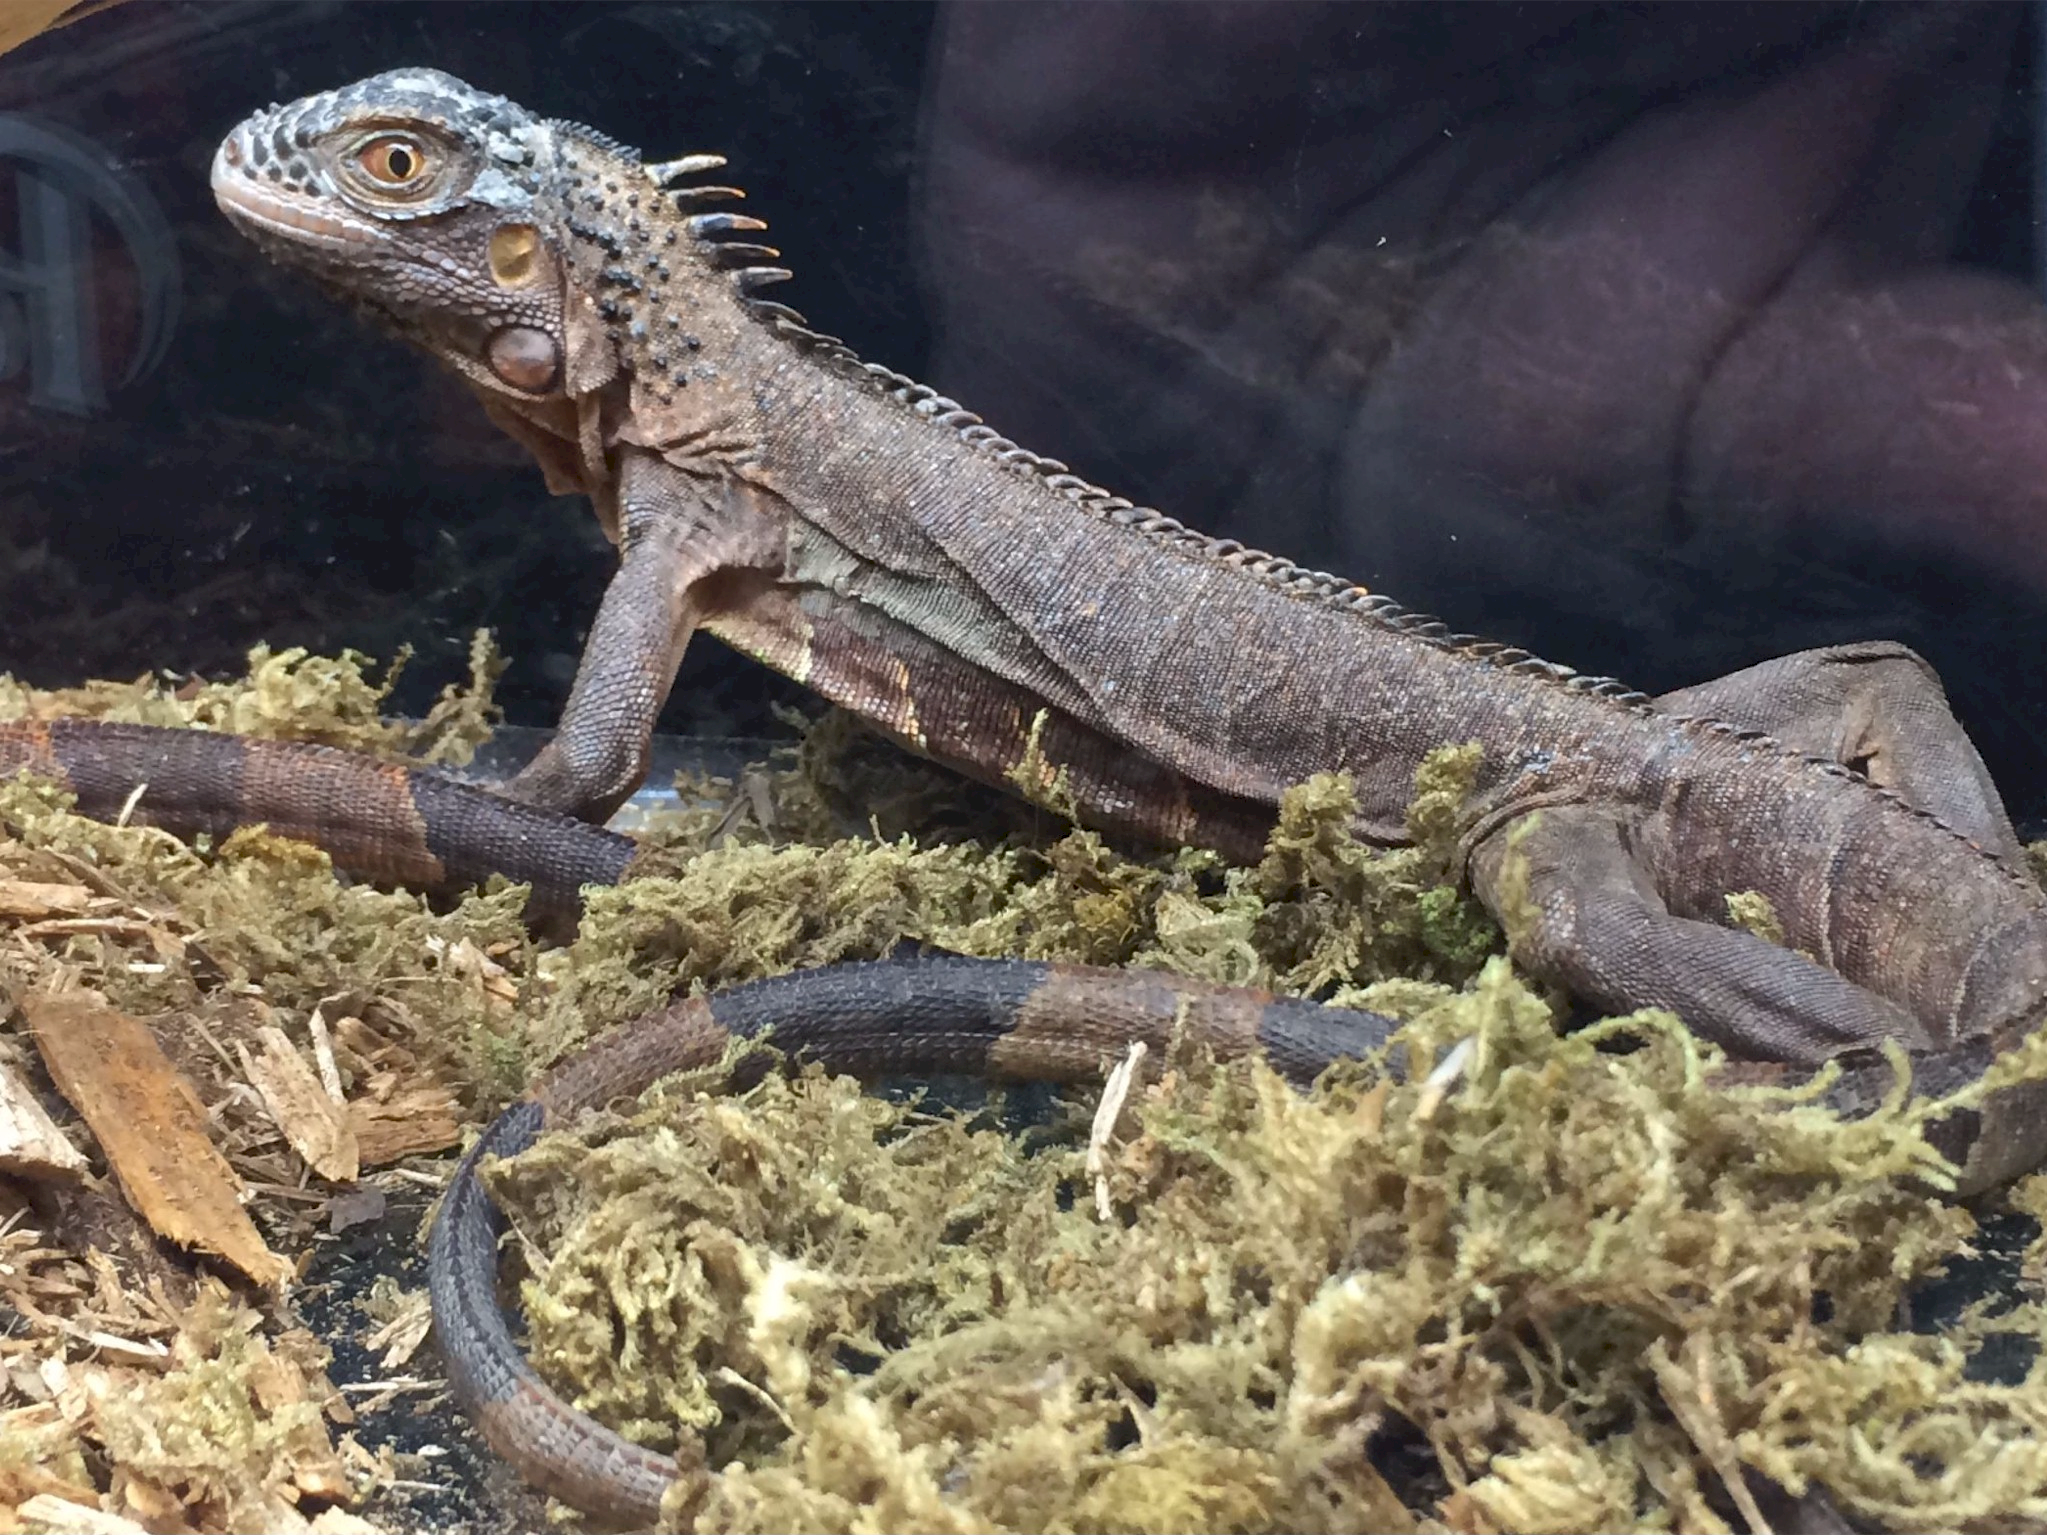 Looking for a new family pet, like an iguana? Hundreds of reptiles, amphibians, spiders, small exotic animals and more will be at Repticon Baltimore on Sept. 29-30 at the Maryland State Fairgrounds in Timonium. Vendors, breeders and educators will be at the family-friendly expo, which will feature seminars, merchandise and live interactions with potential pets. The expo runs from 10 a.m. to 5 p.m. Saturday and 10 a.m. to 4 p.m. Sunday. Tickets are $10 for adults, $5 for kids 5-12 and under 5 are free. Visit repticon.com/maryland/baltimore for more.